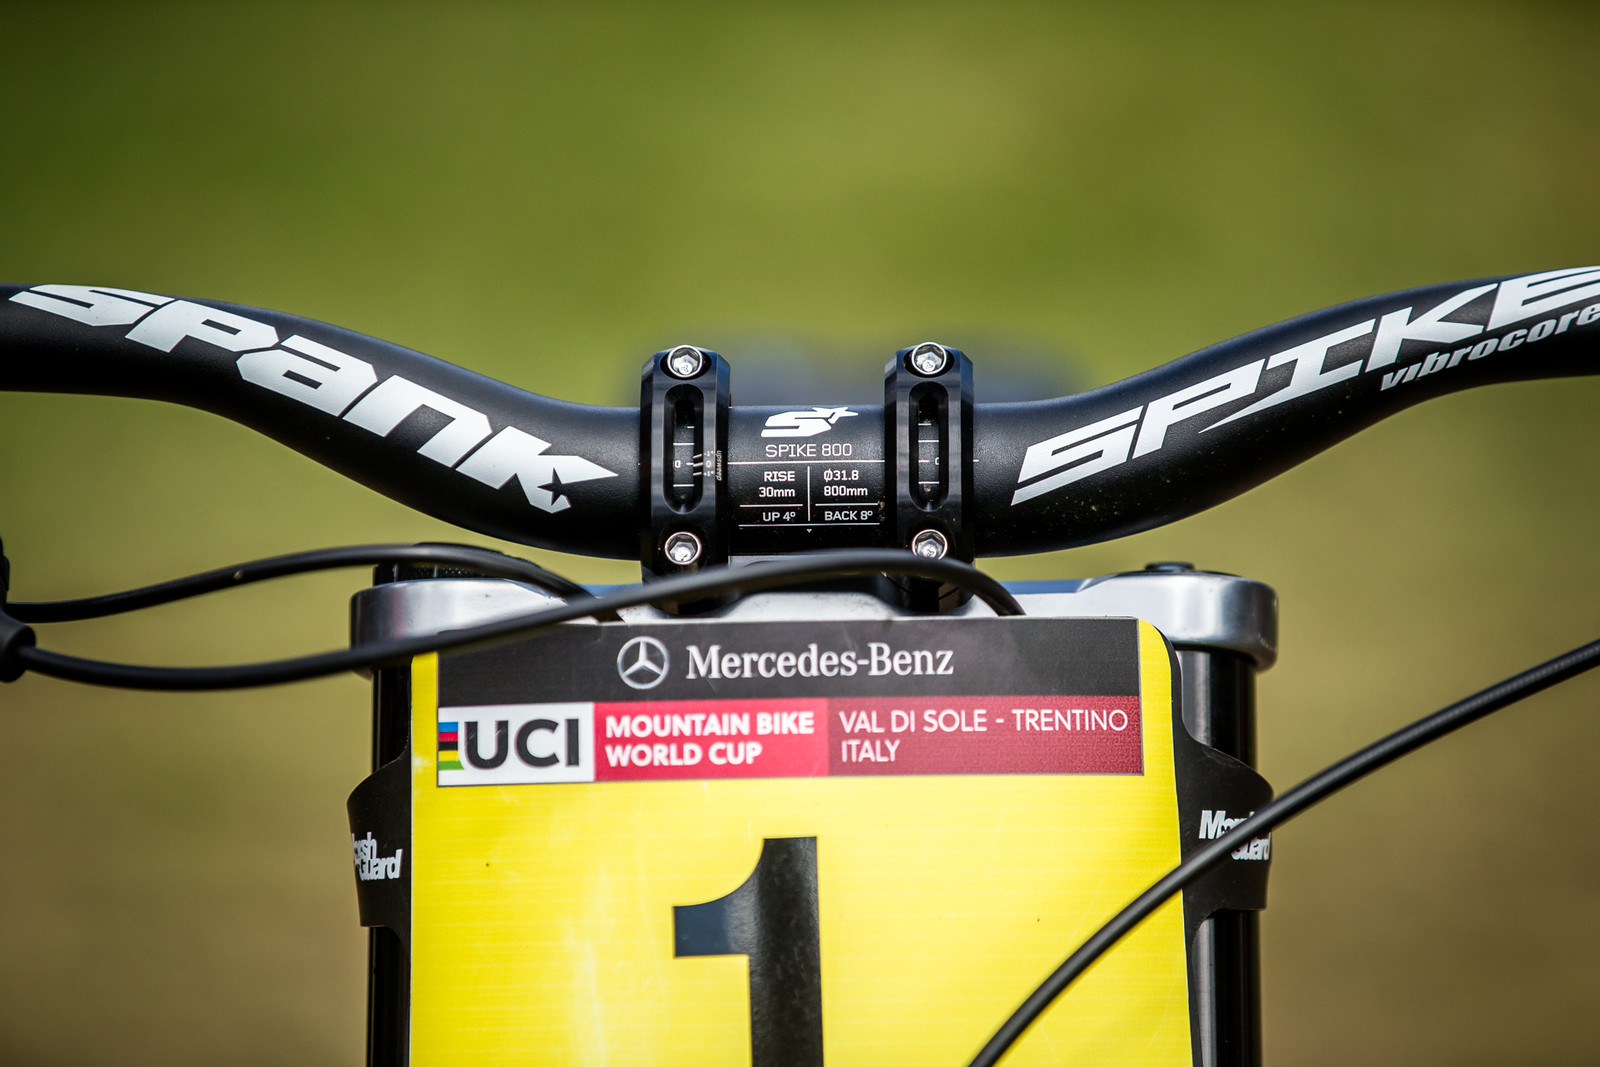 Spank Vibrocore Bars - WINNING BIKE - Amaury Pierron's Commencal Supreme DH 29 - Mountain Biking Pictures - Vital MTB